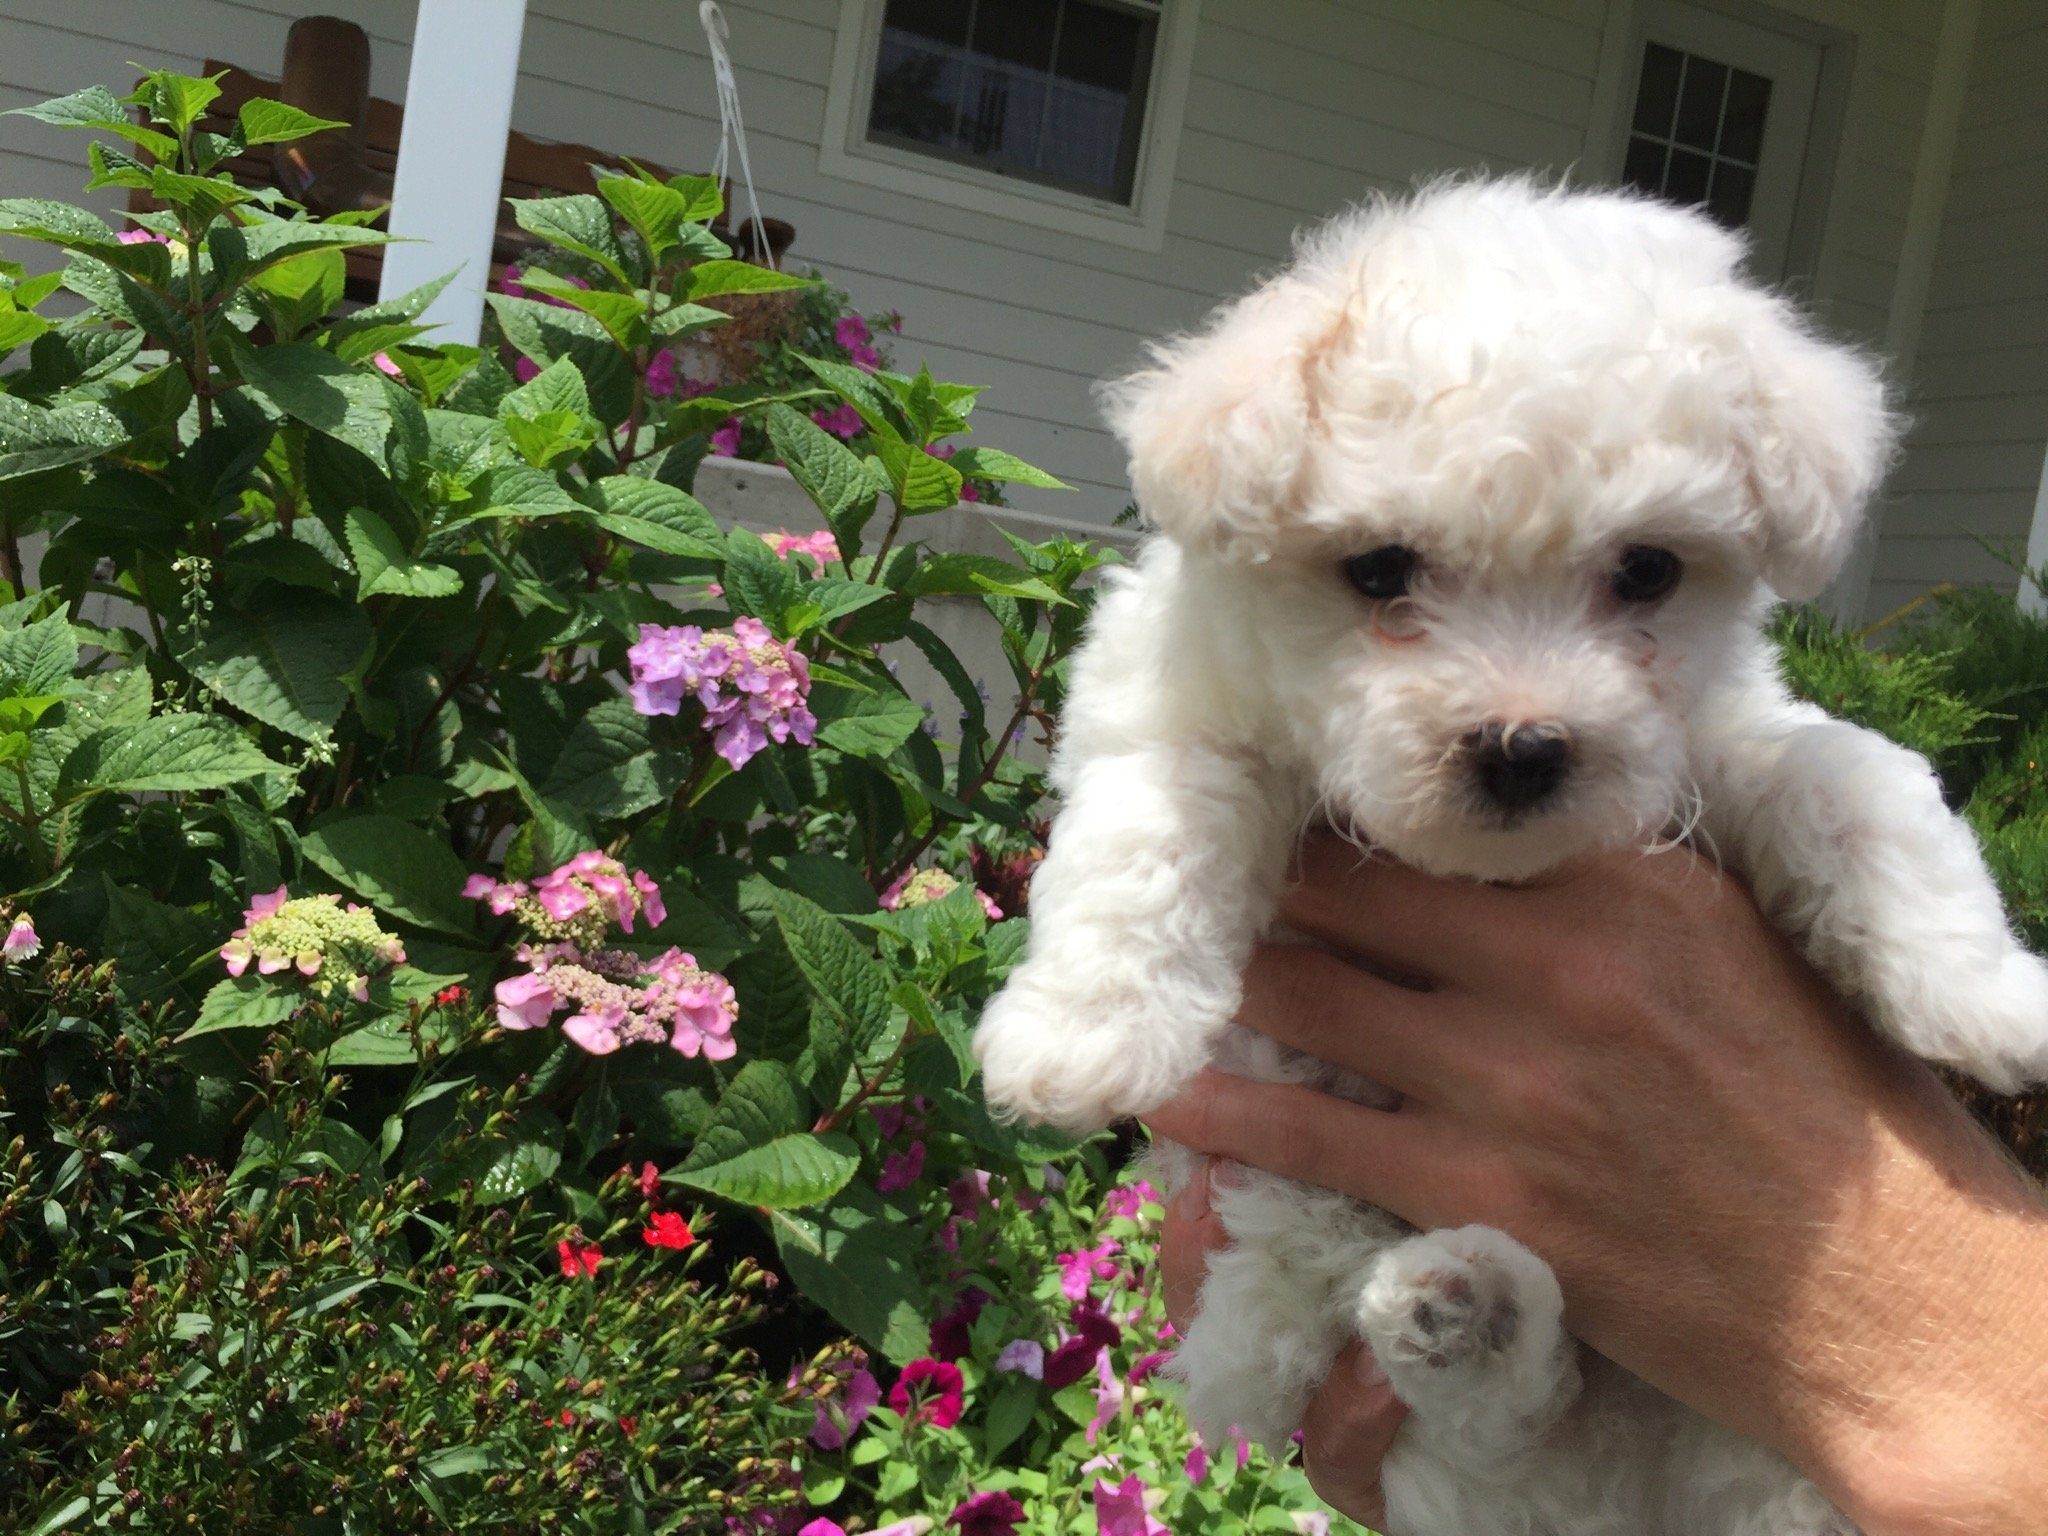 Sophie - Female AKC Bichon Frise puppy for sale in Edon, Ohio | VIP Puppies